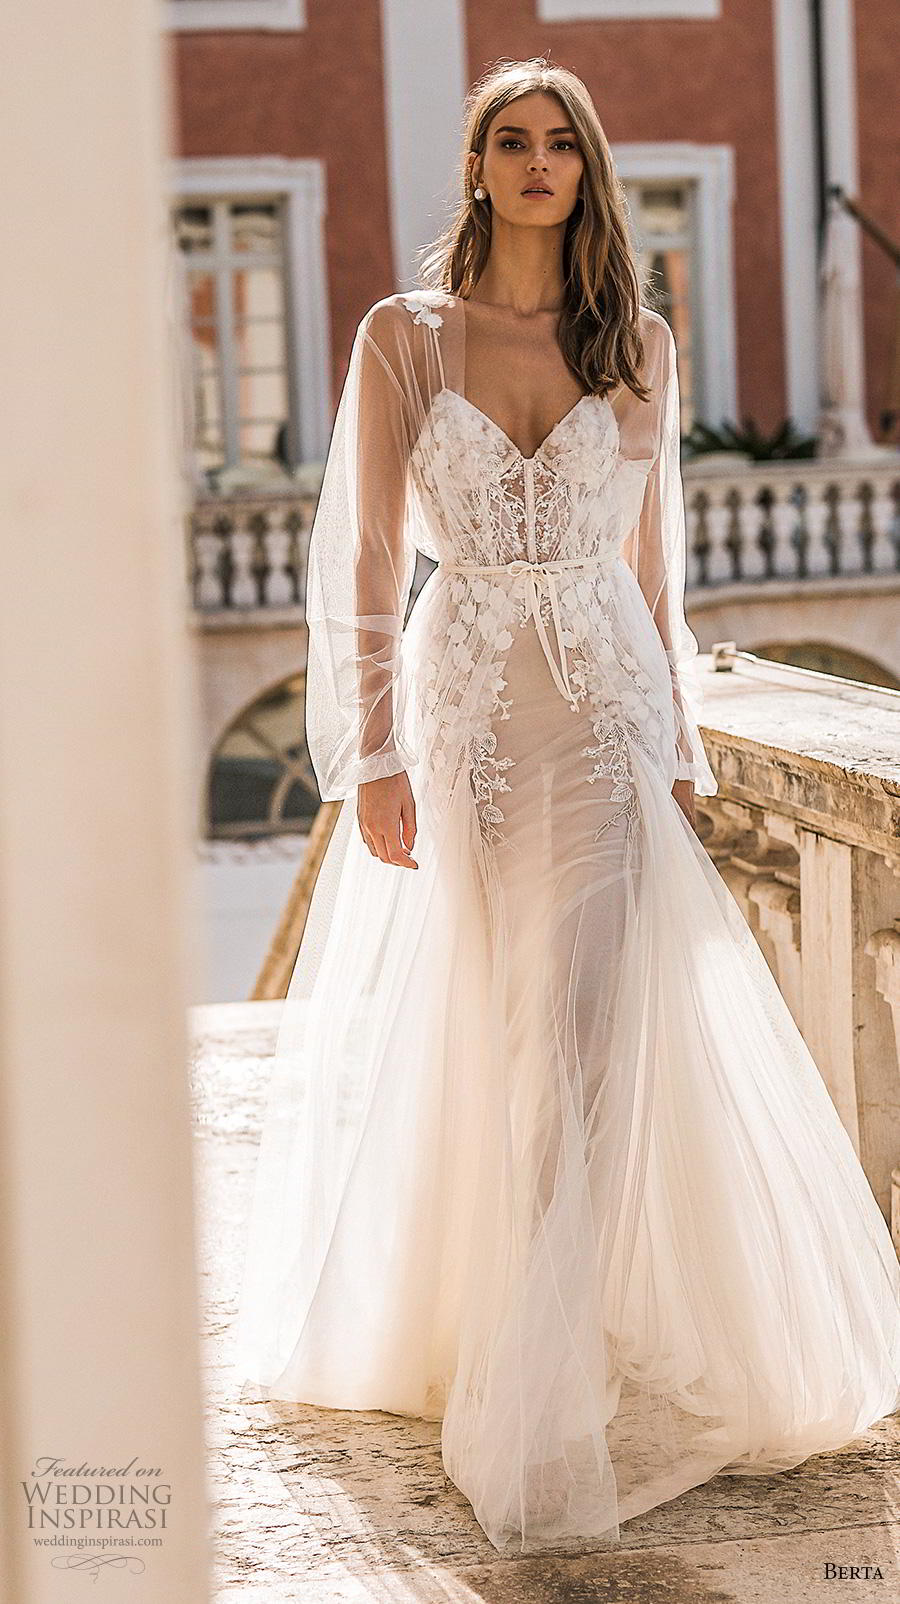 berta 2019 privee bridal long sheer sleeves spaghetti strap sweetheart neckline heavily embellished bodice bustier romantic a  line wedding dress backless medium train (1) mv